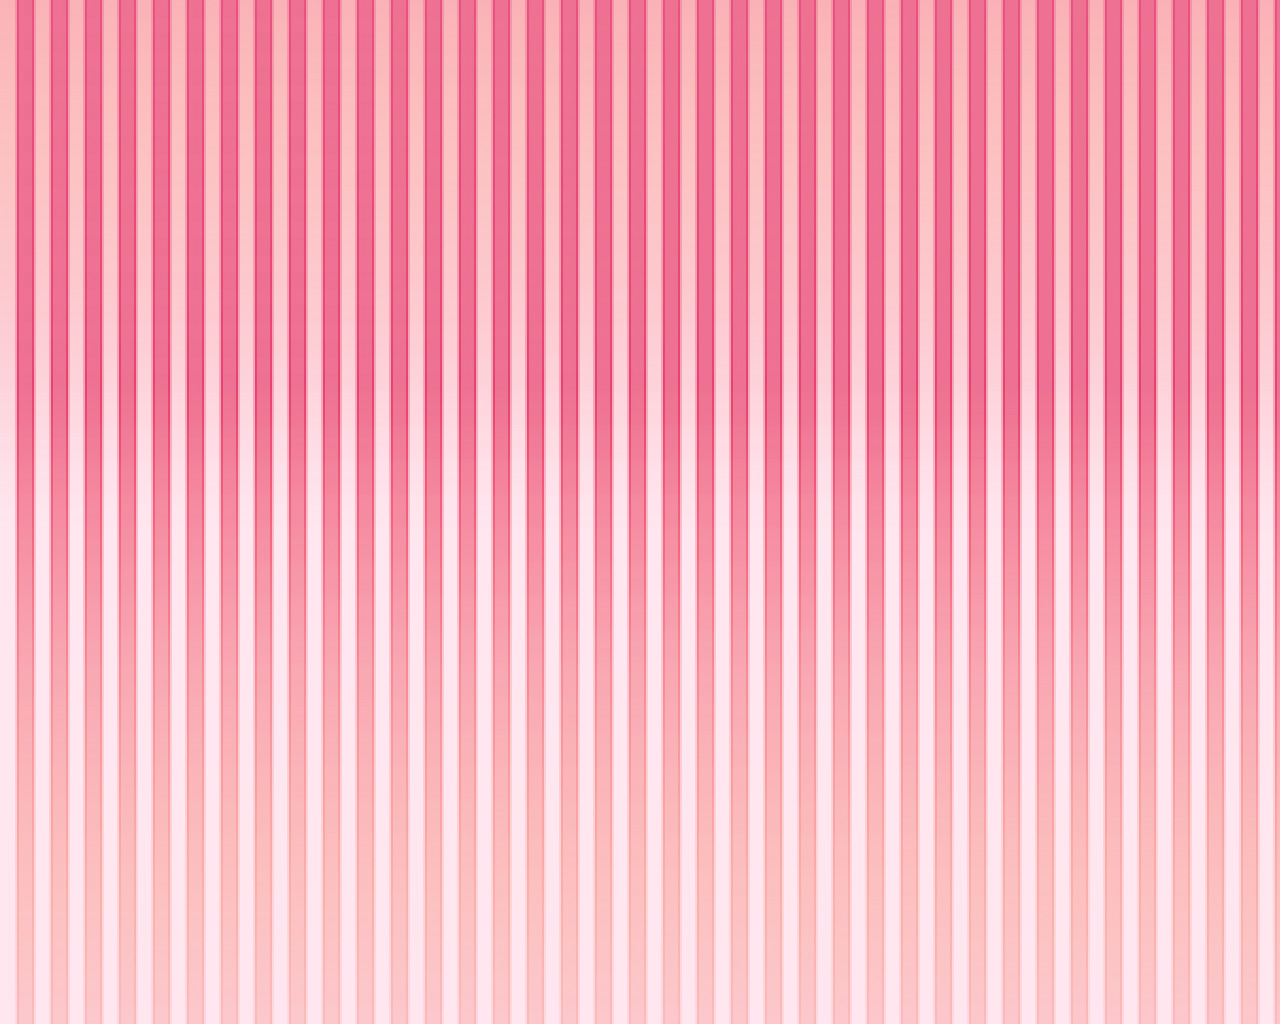 Sh Yn Design: Stripe Wallpaper - Pink & Peach Colour Part 2